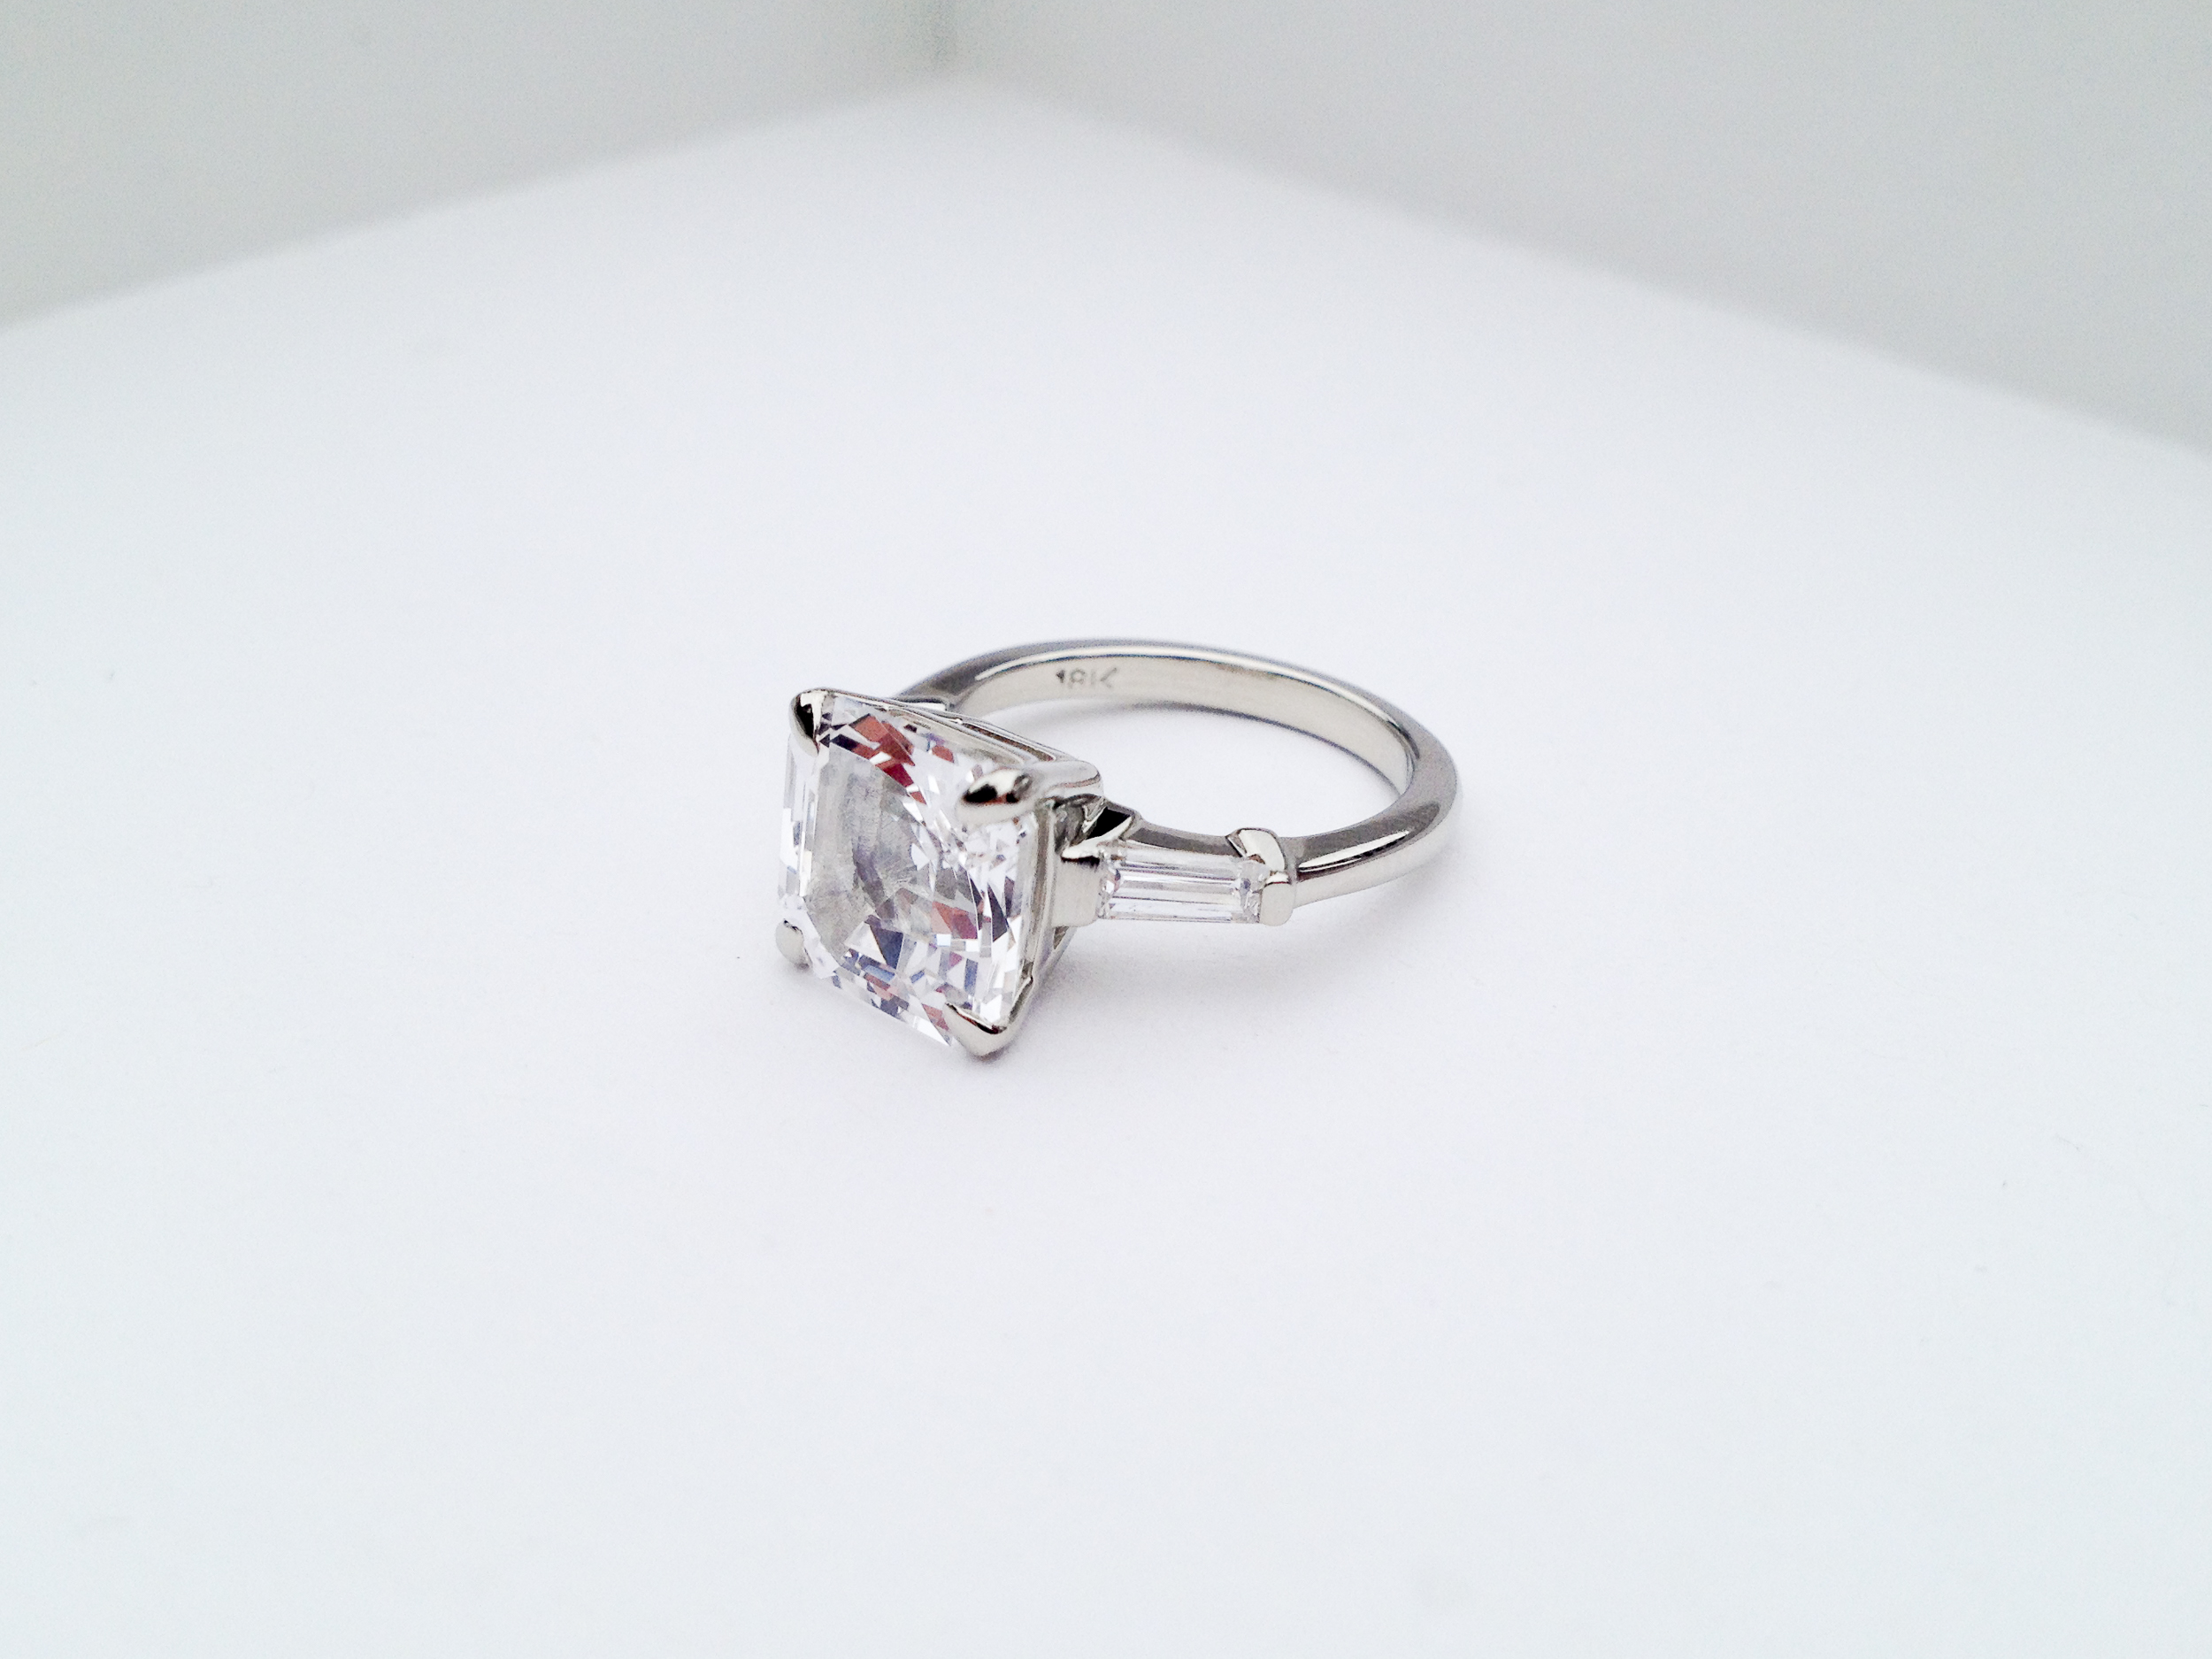 ADELE Engagement Ring:  ethically-sourced, lab-created, asscher-cut white sapphire, baguette diamonds, 18k white gold.